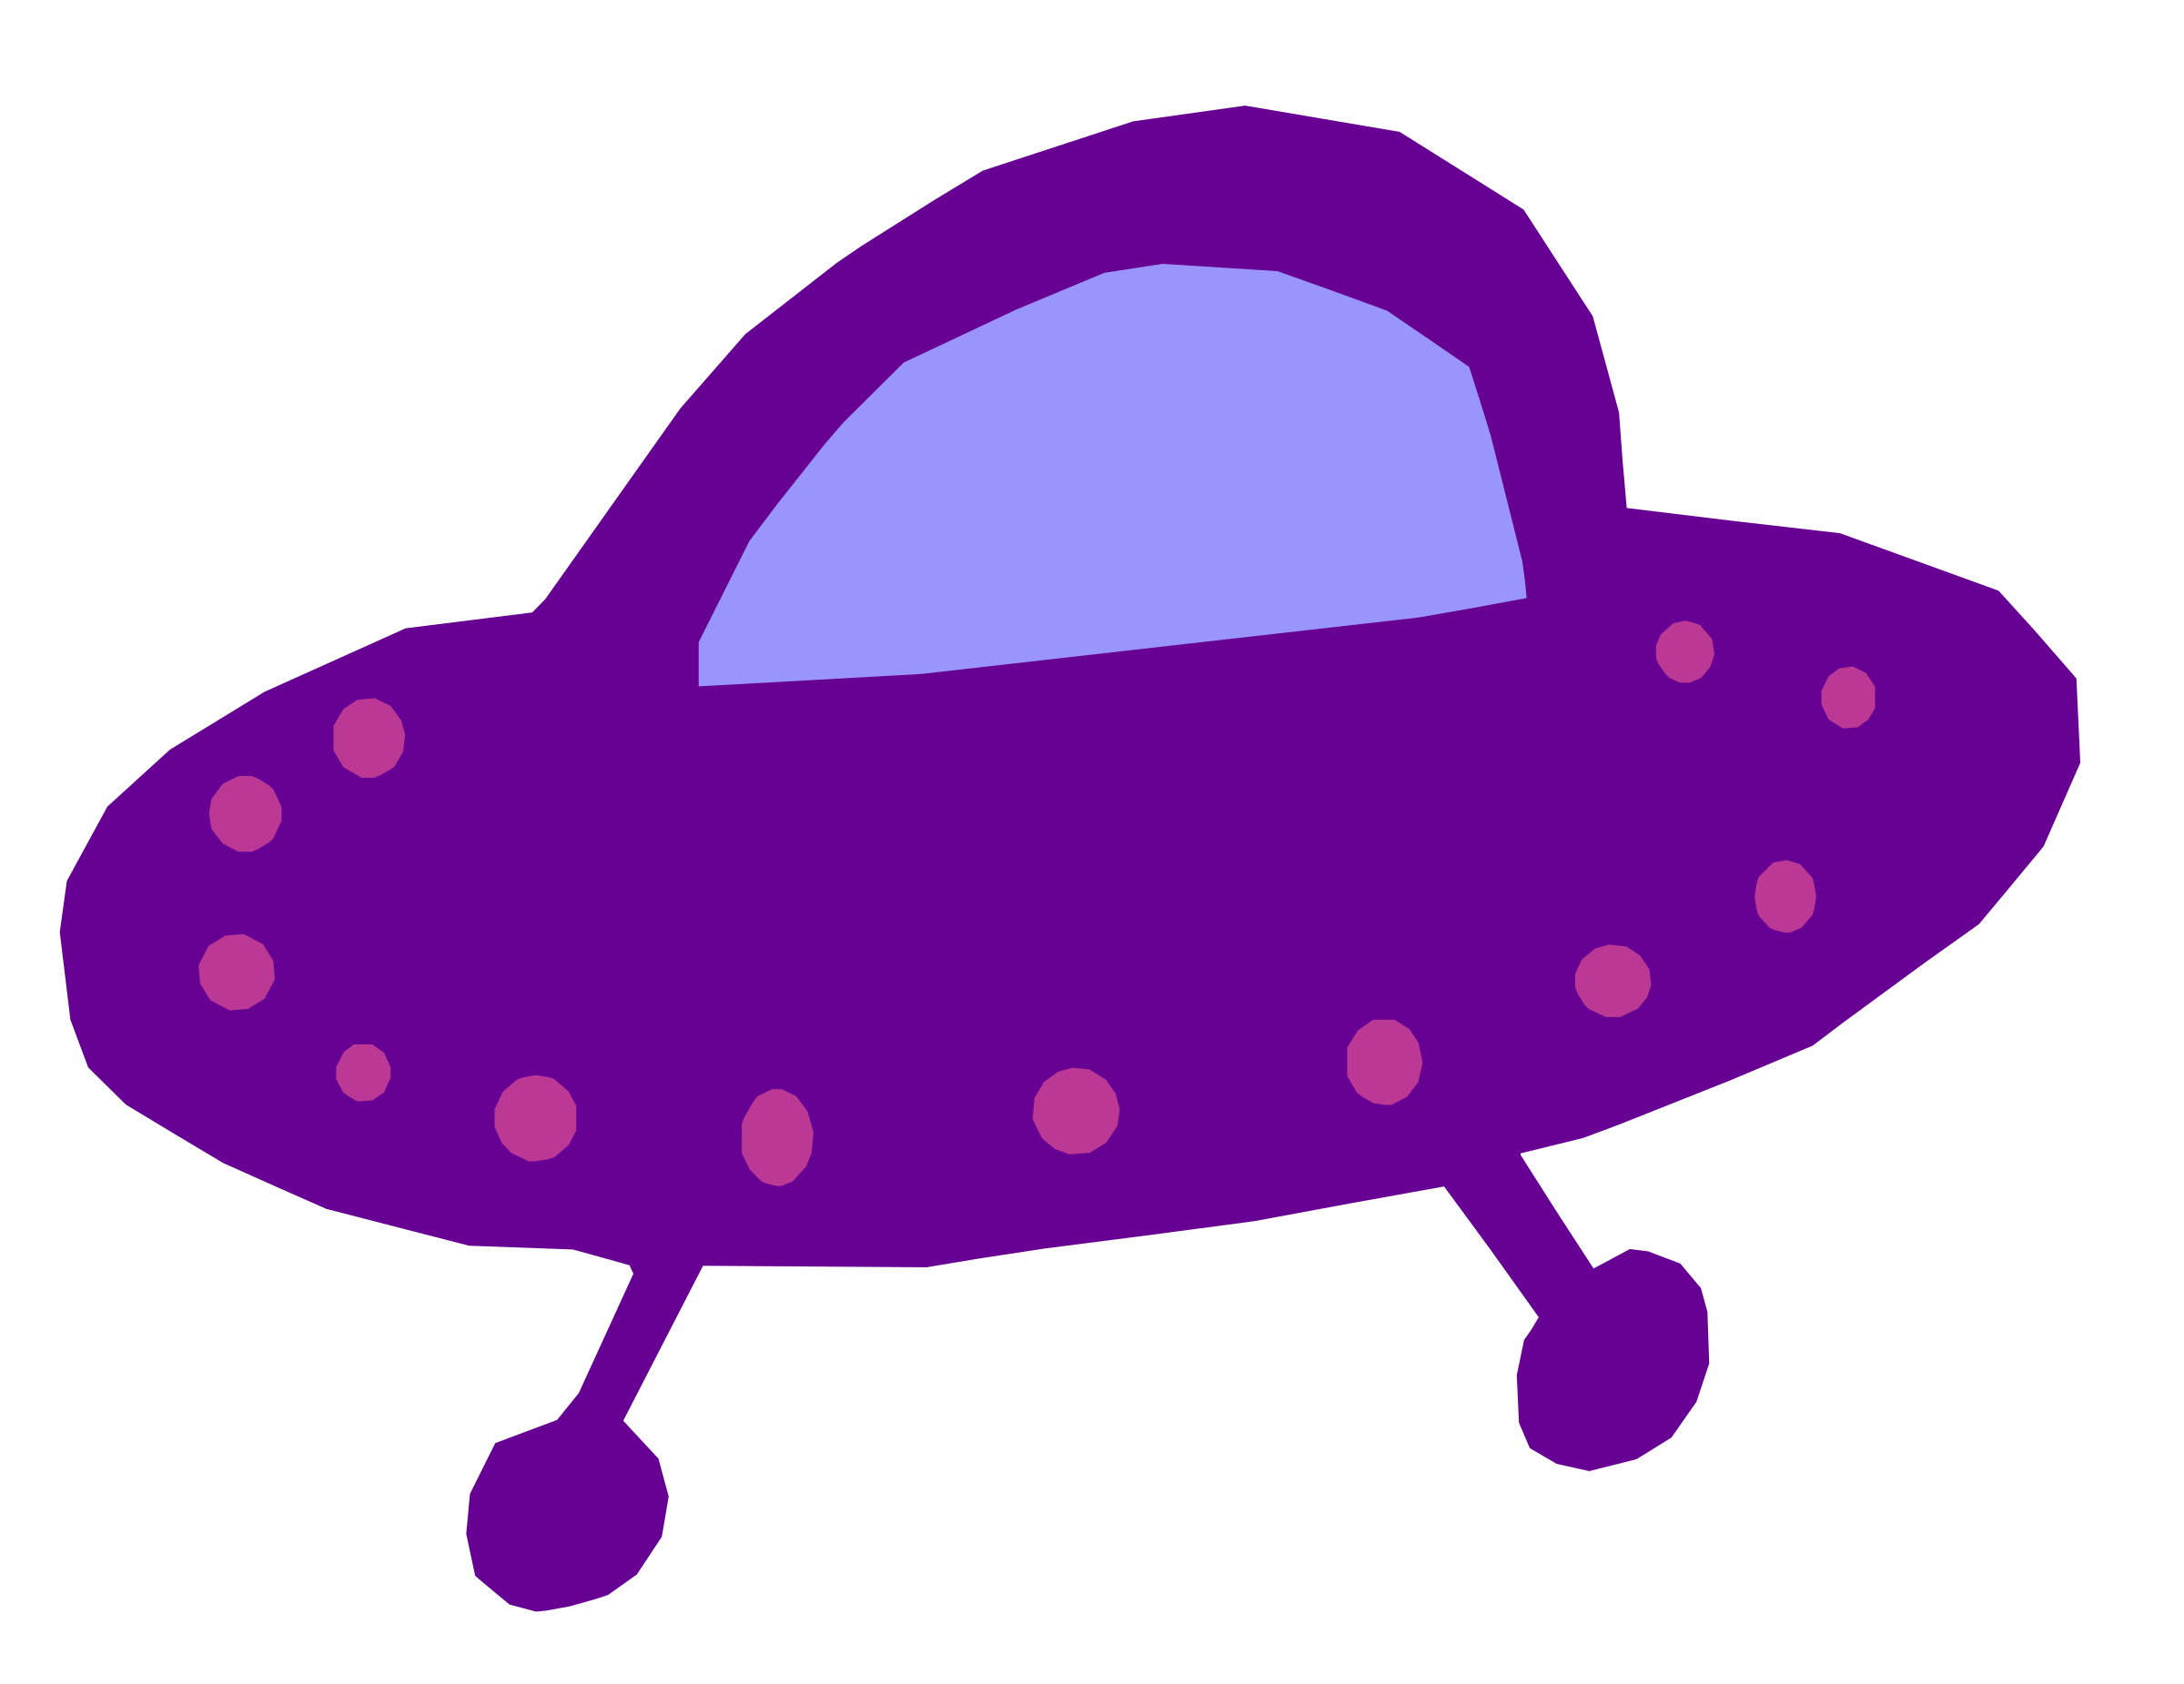 Ufo clipart colorful. Purple refixed icons png